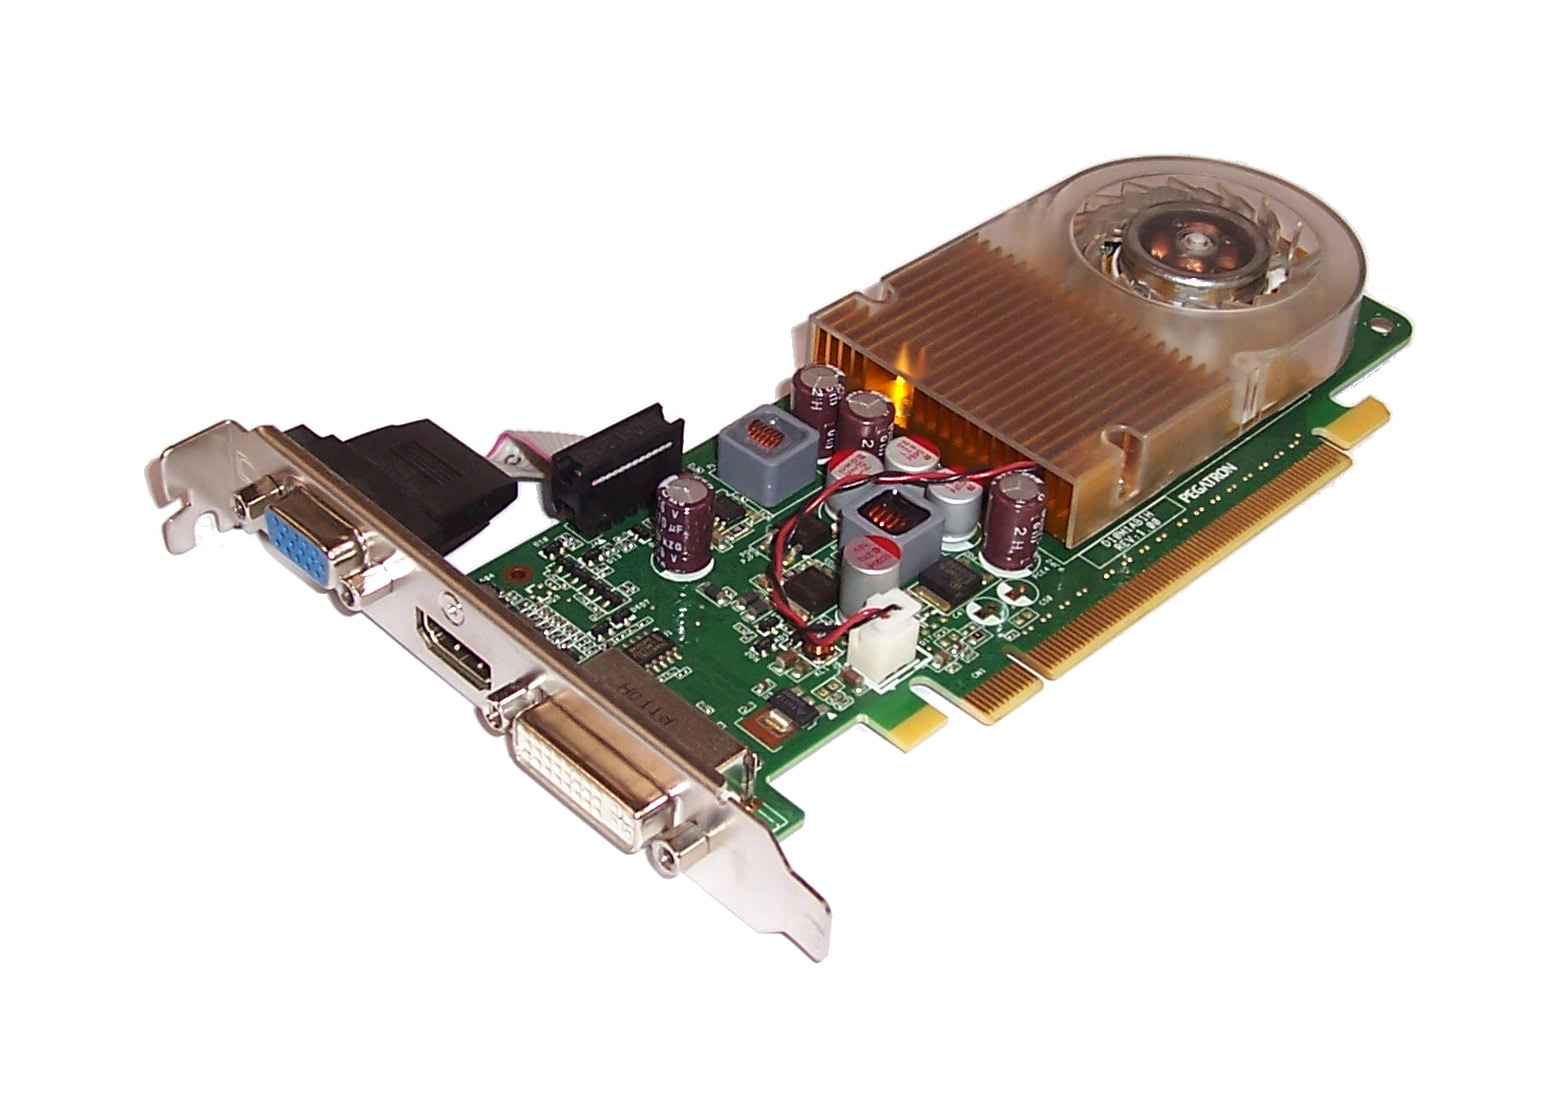 HP 533207-001 nVidia G210 512MB PCIe Graphics Card With DVI, HDMI & VGA Port